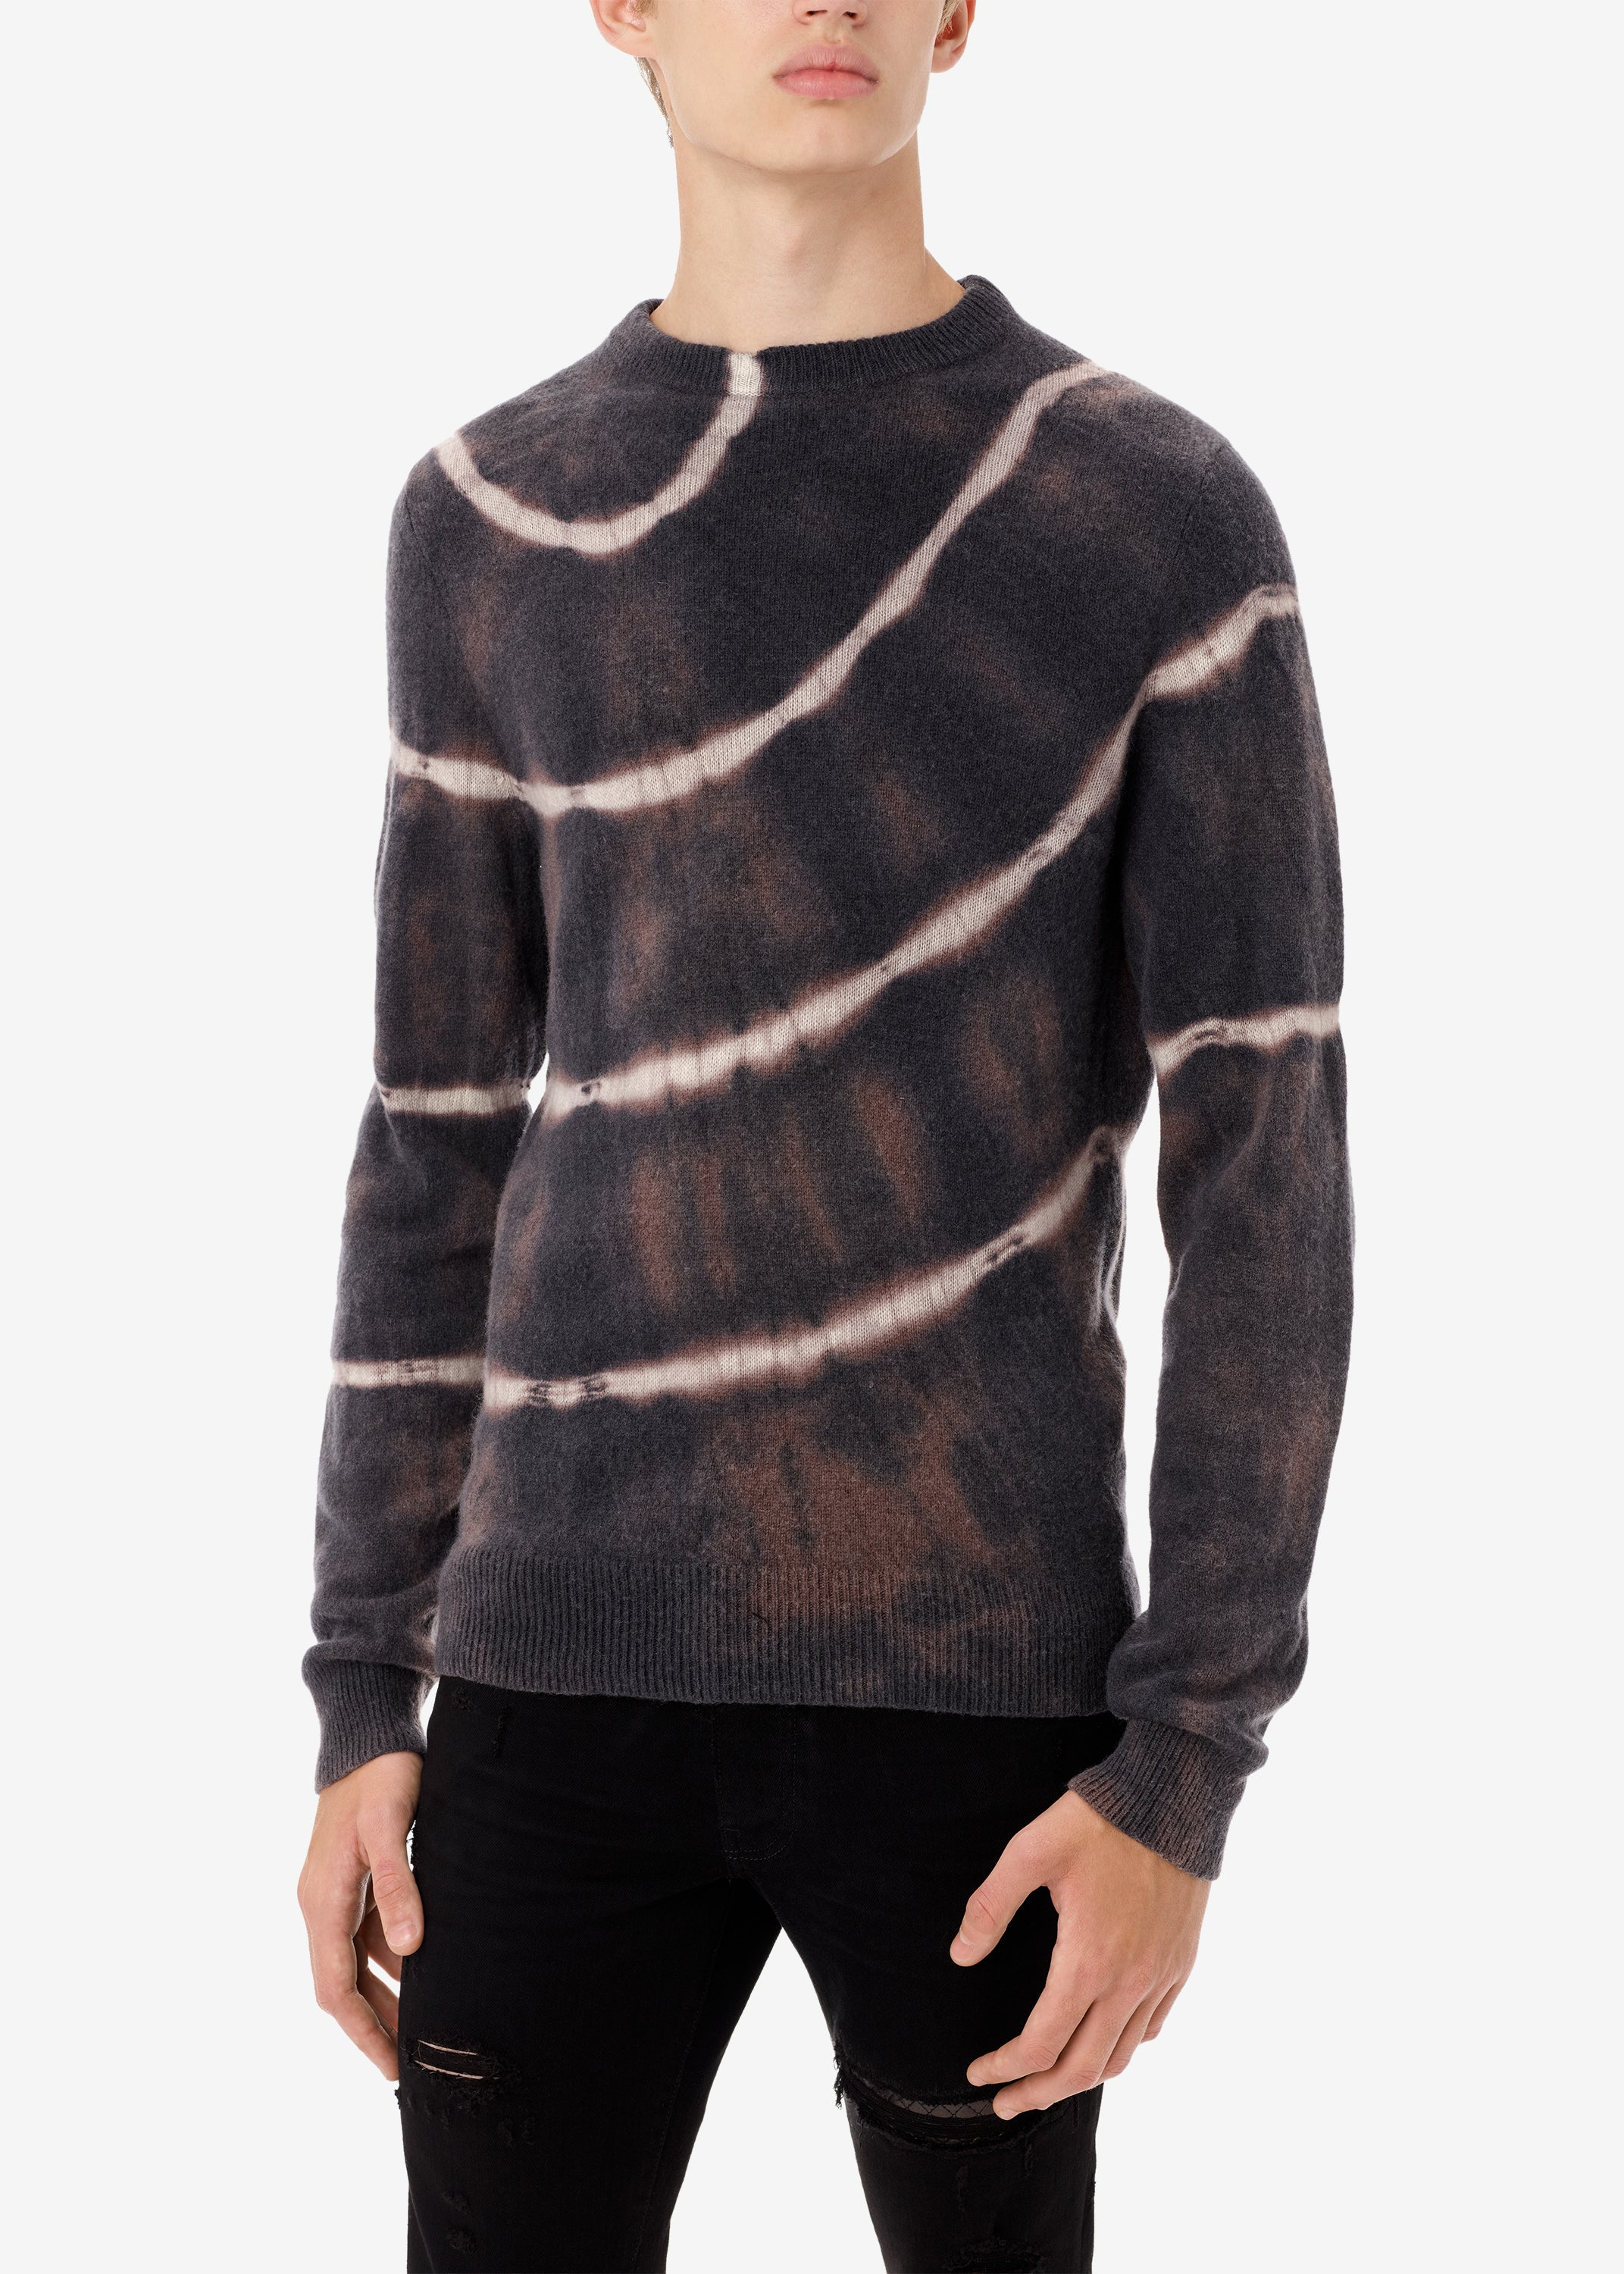 exclusive-tie-dye-sweater-multi-color-image-4